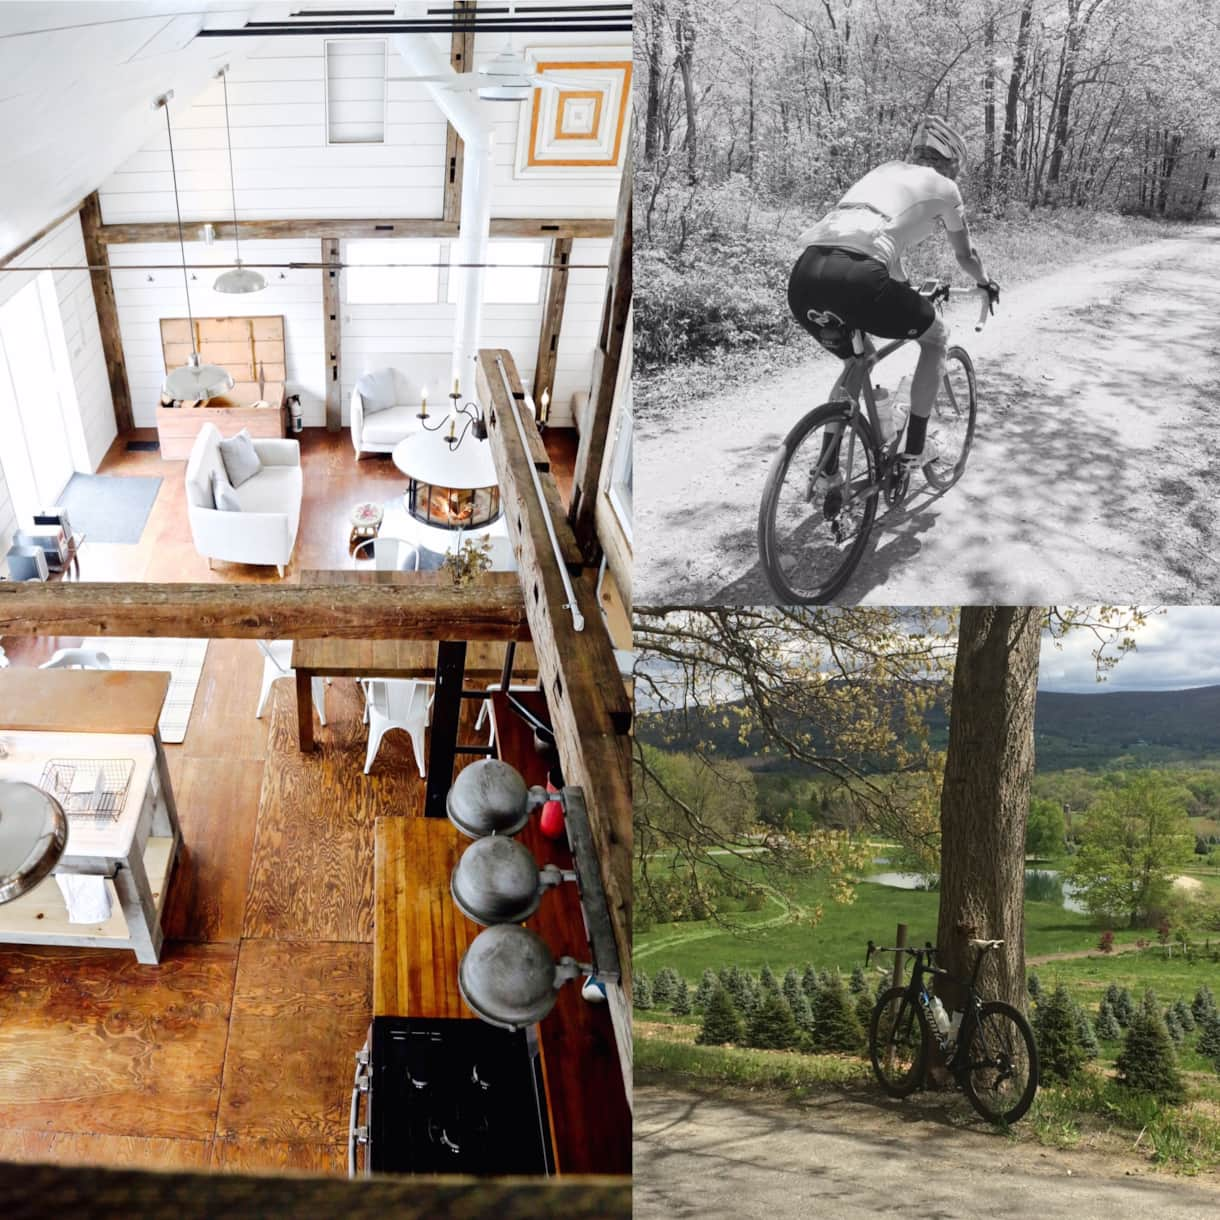 rustic, arcadian cycling & lodging